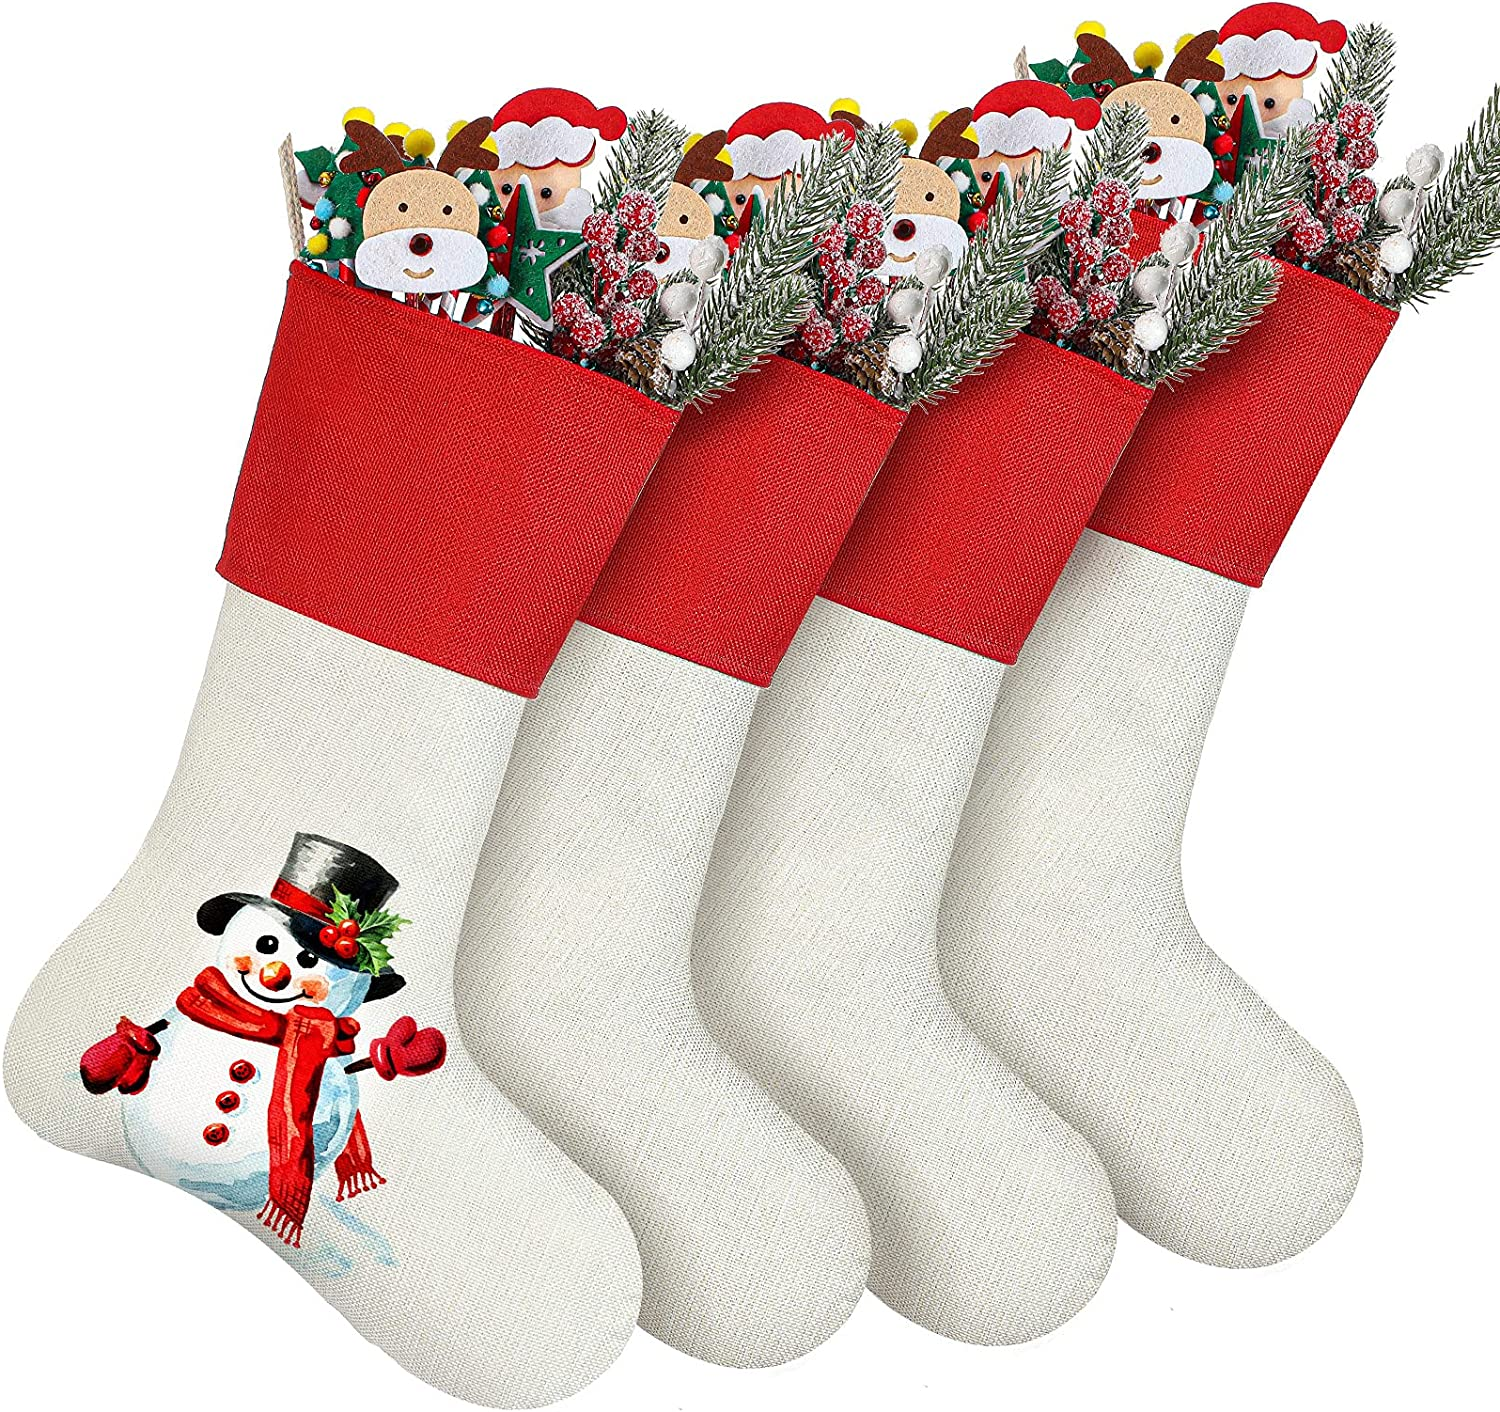 4 Pieces Popular brand in the world Christmas Stocking DIY At the price of surprise Xmas Sublimation Decor